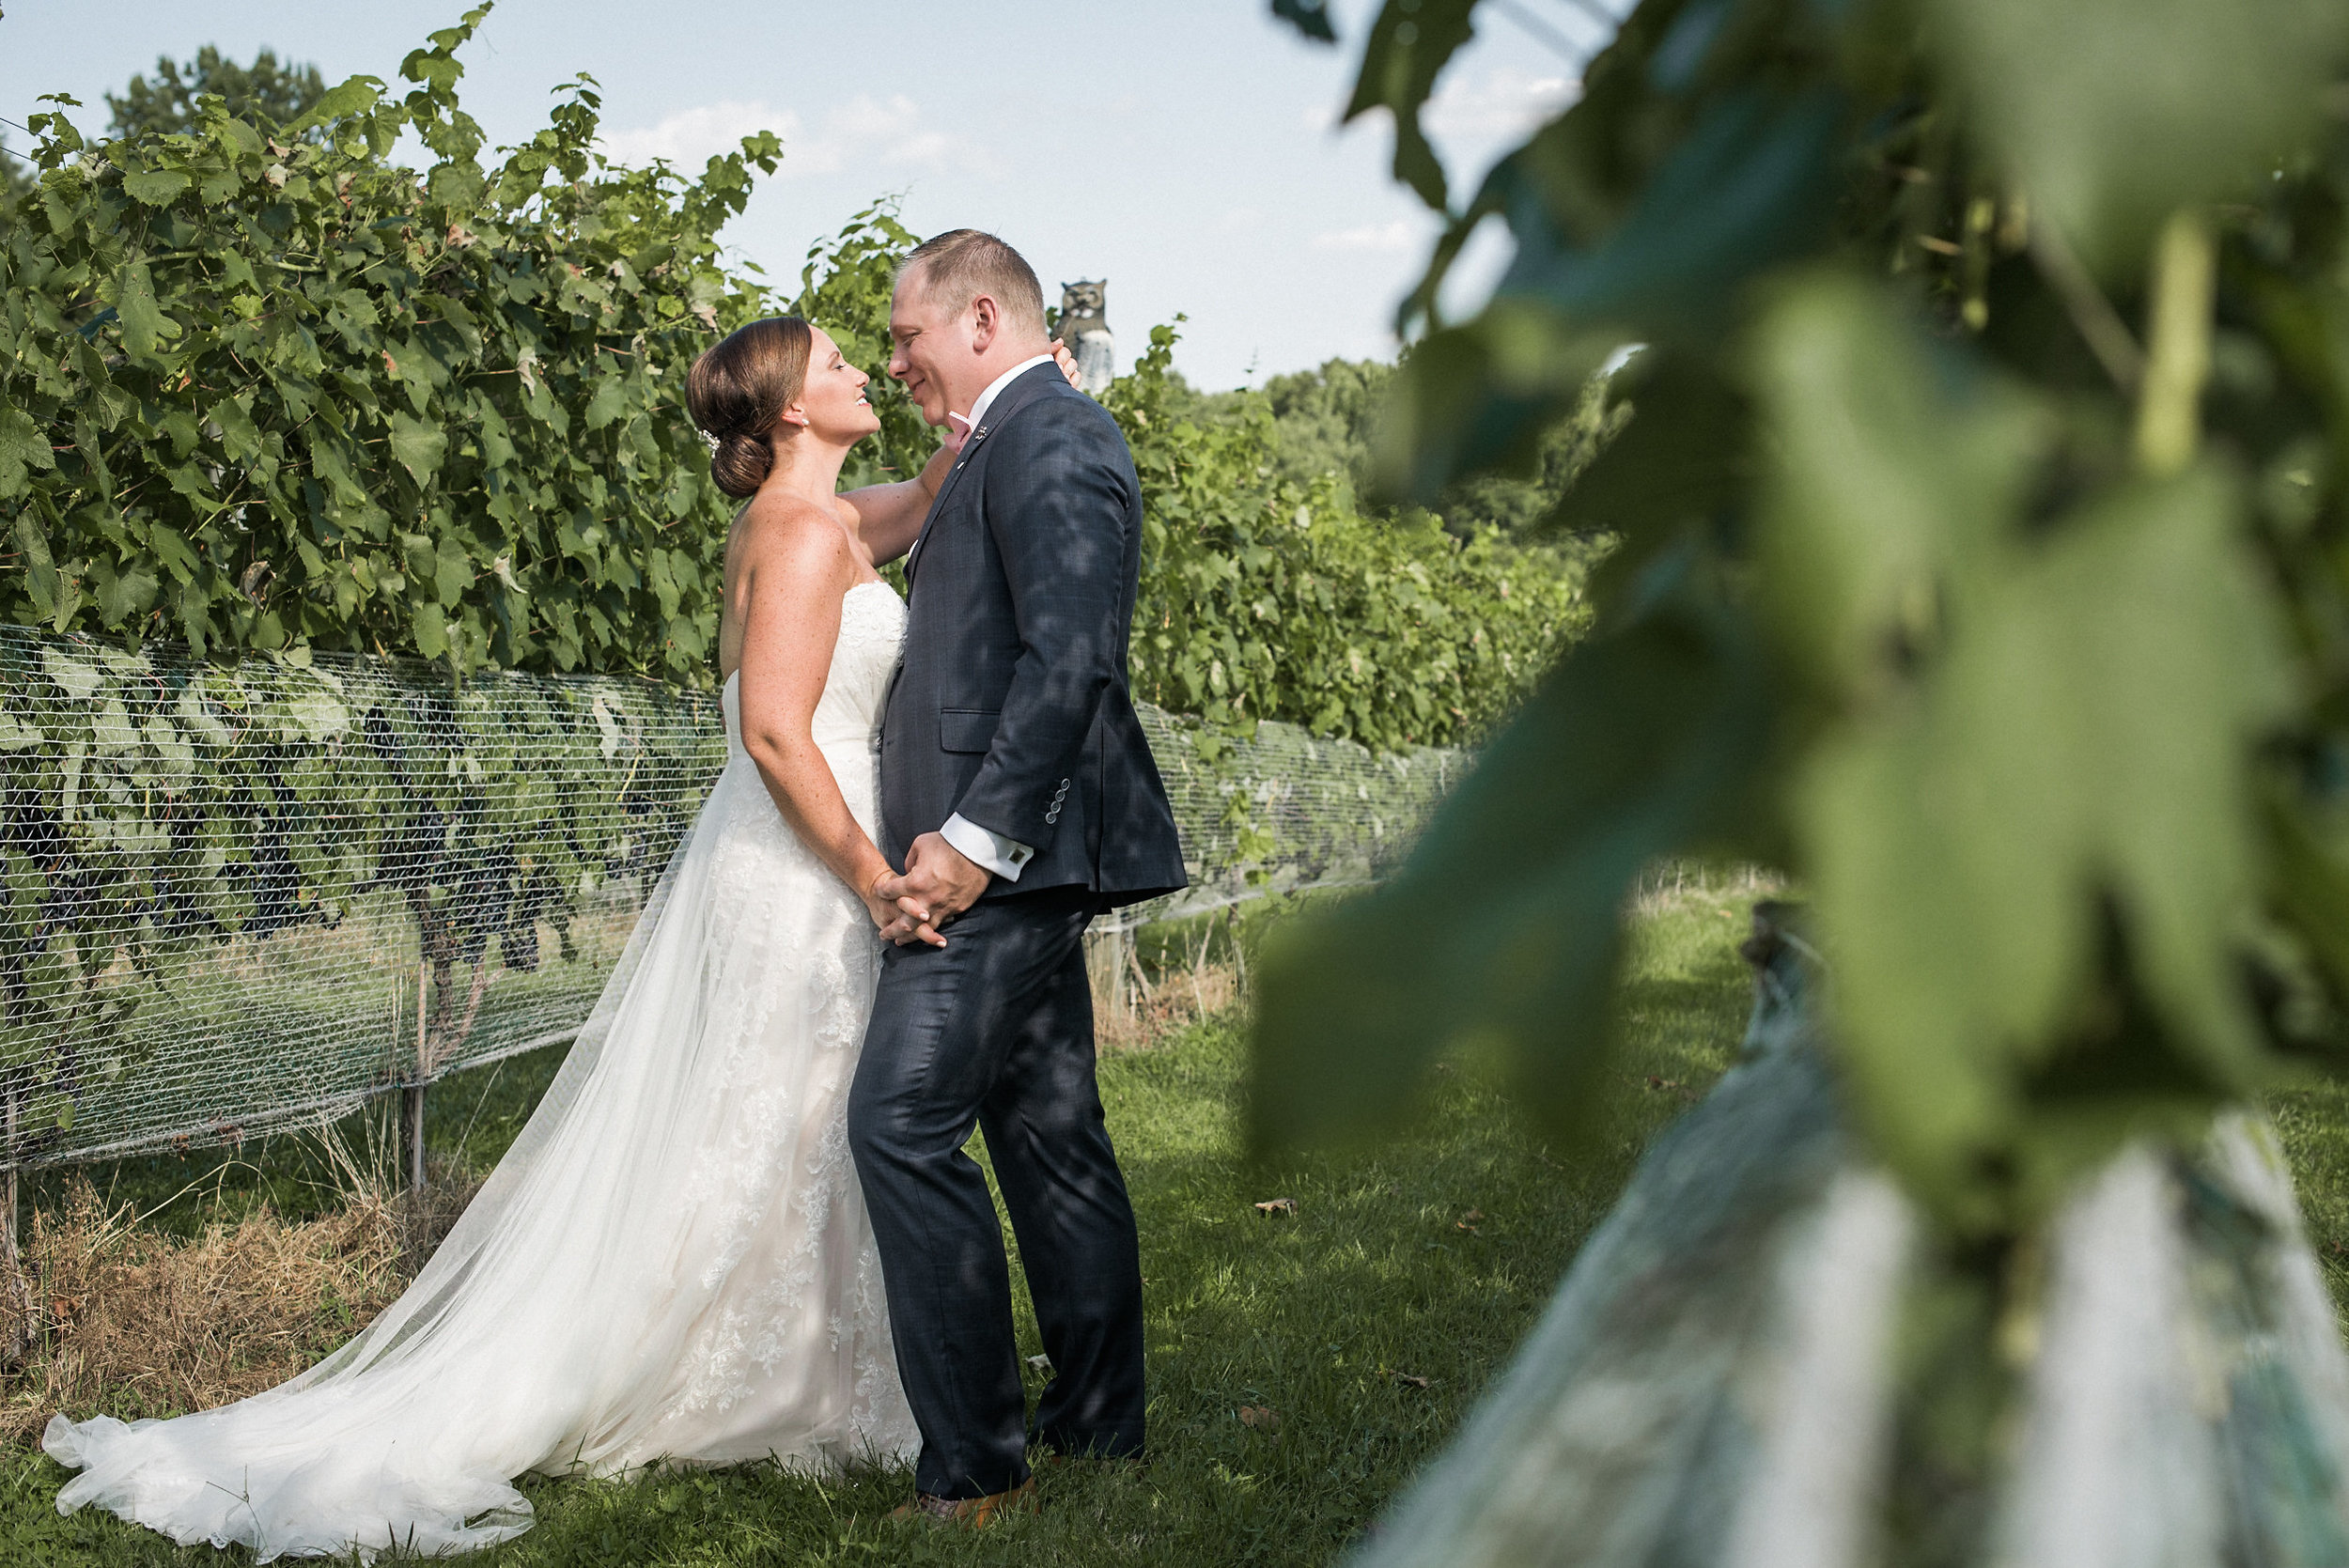 Bride and groom seen from behind vine